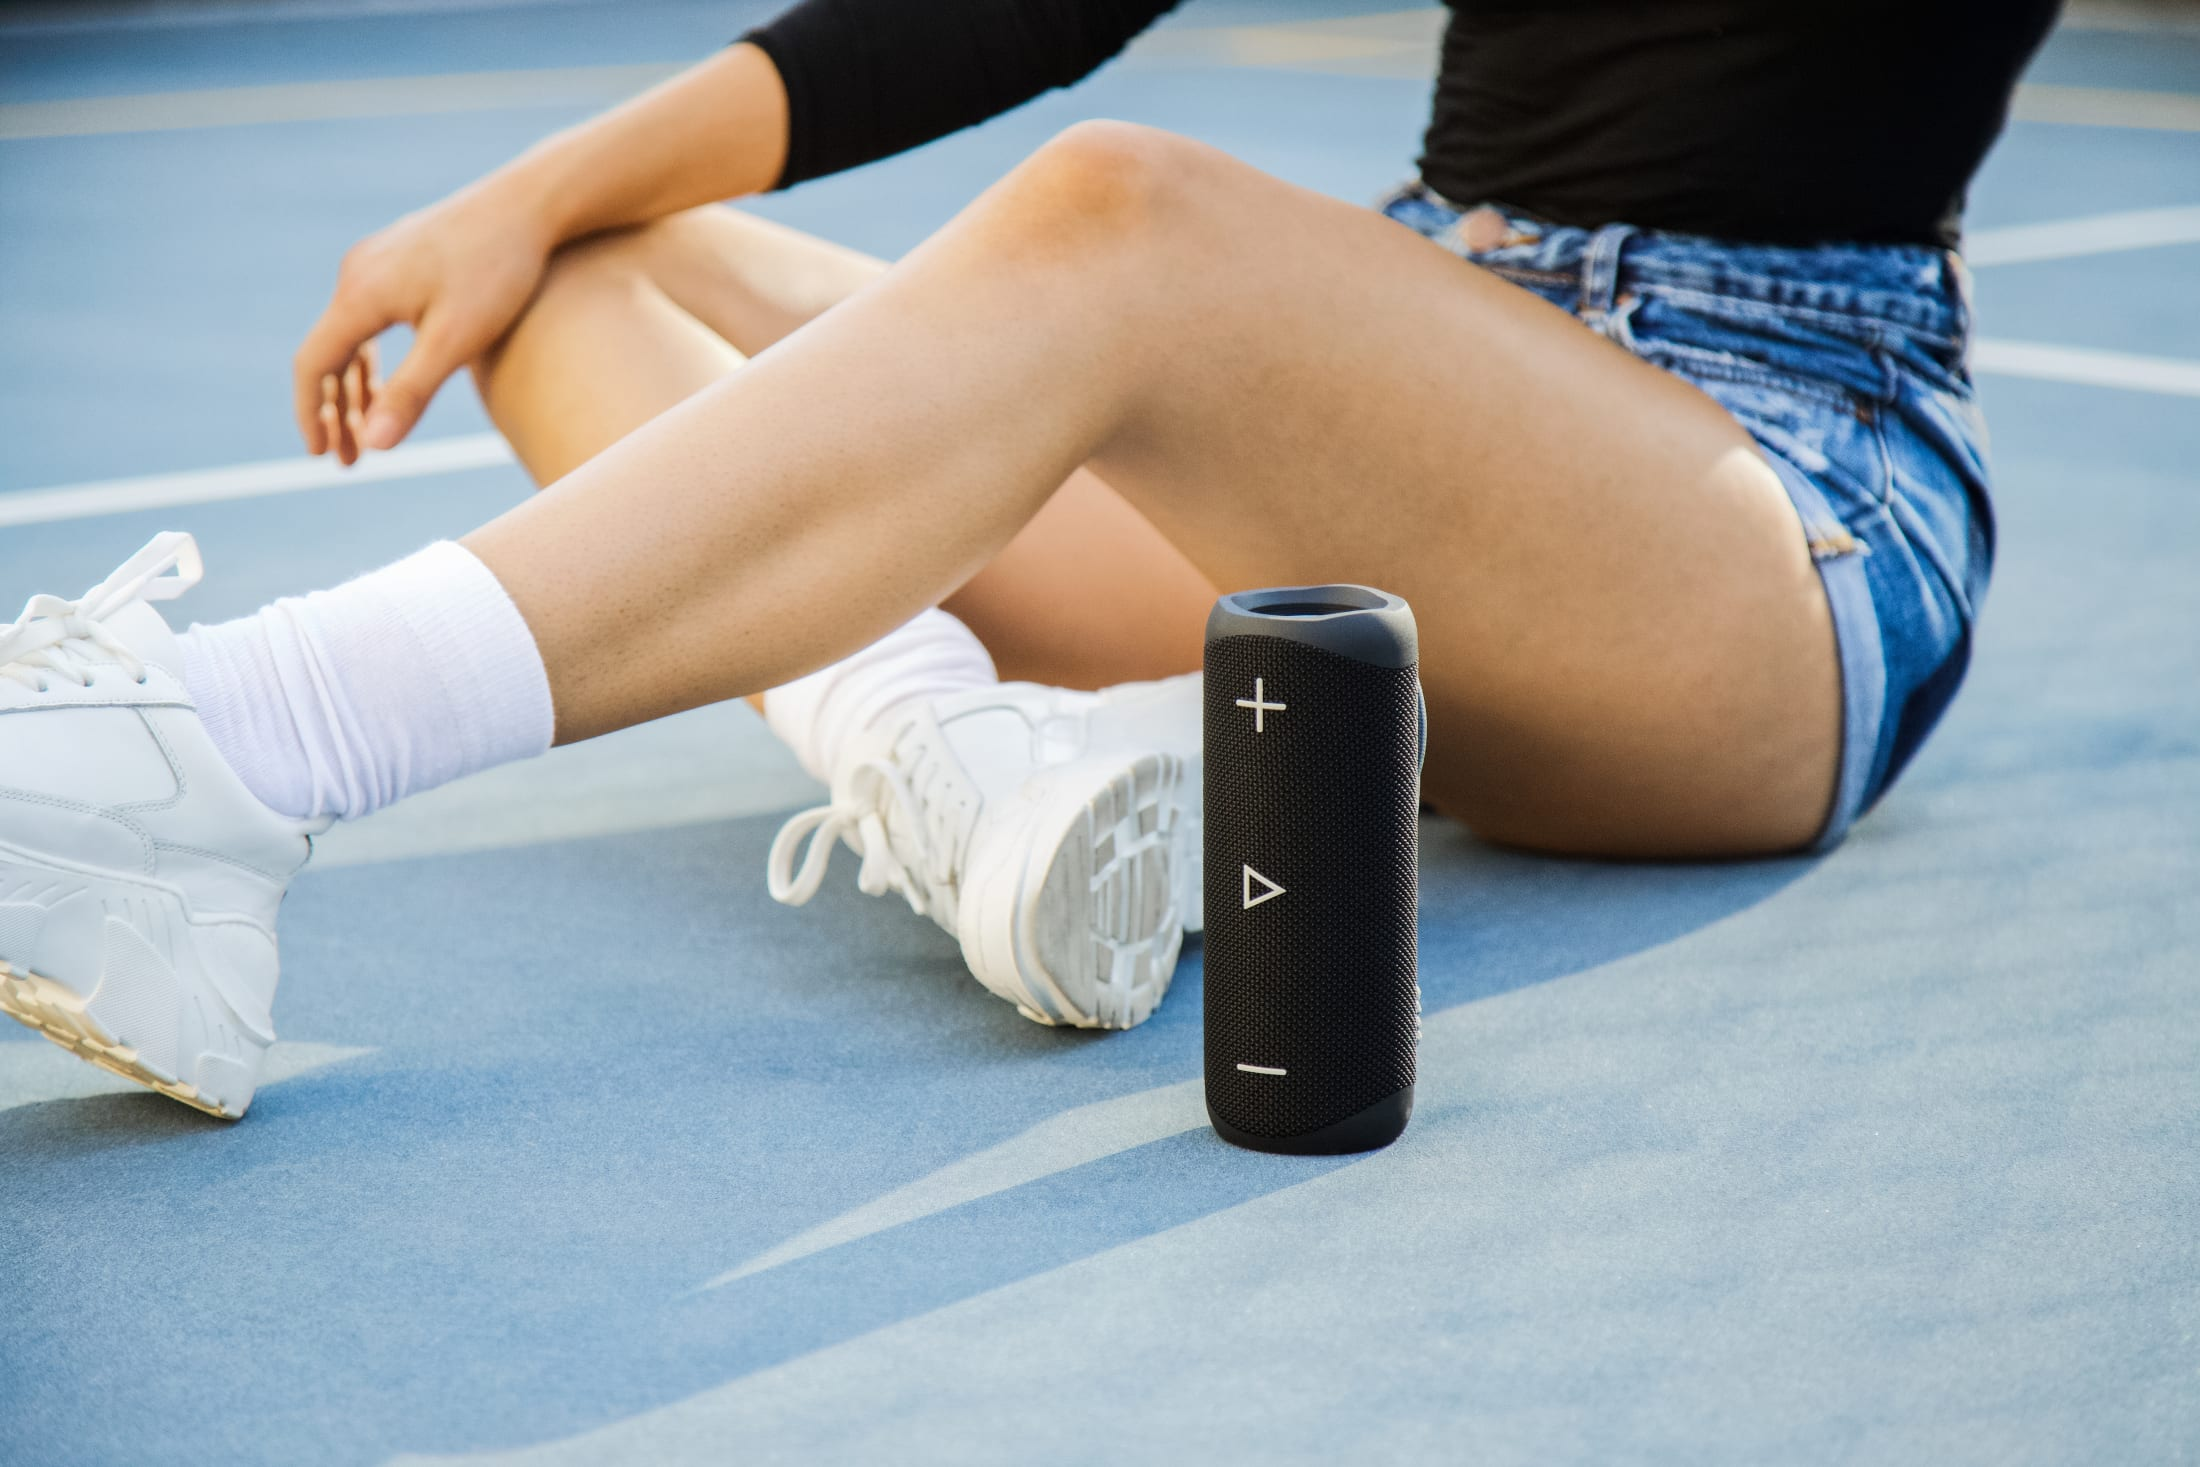 Portable Stereo Bluetooth Wireless Speaker, 20 W, with advance DSP technology, 90 dB SPL, 12 hours play time and IP 56 proof.